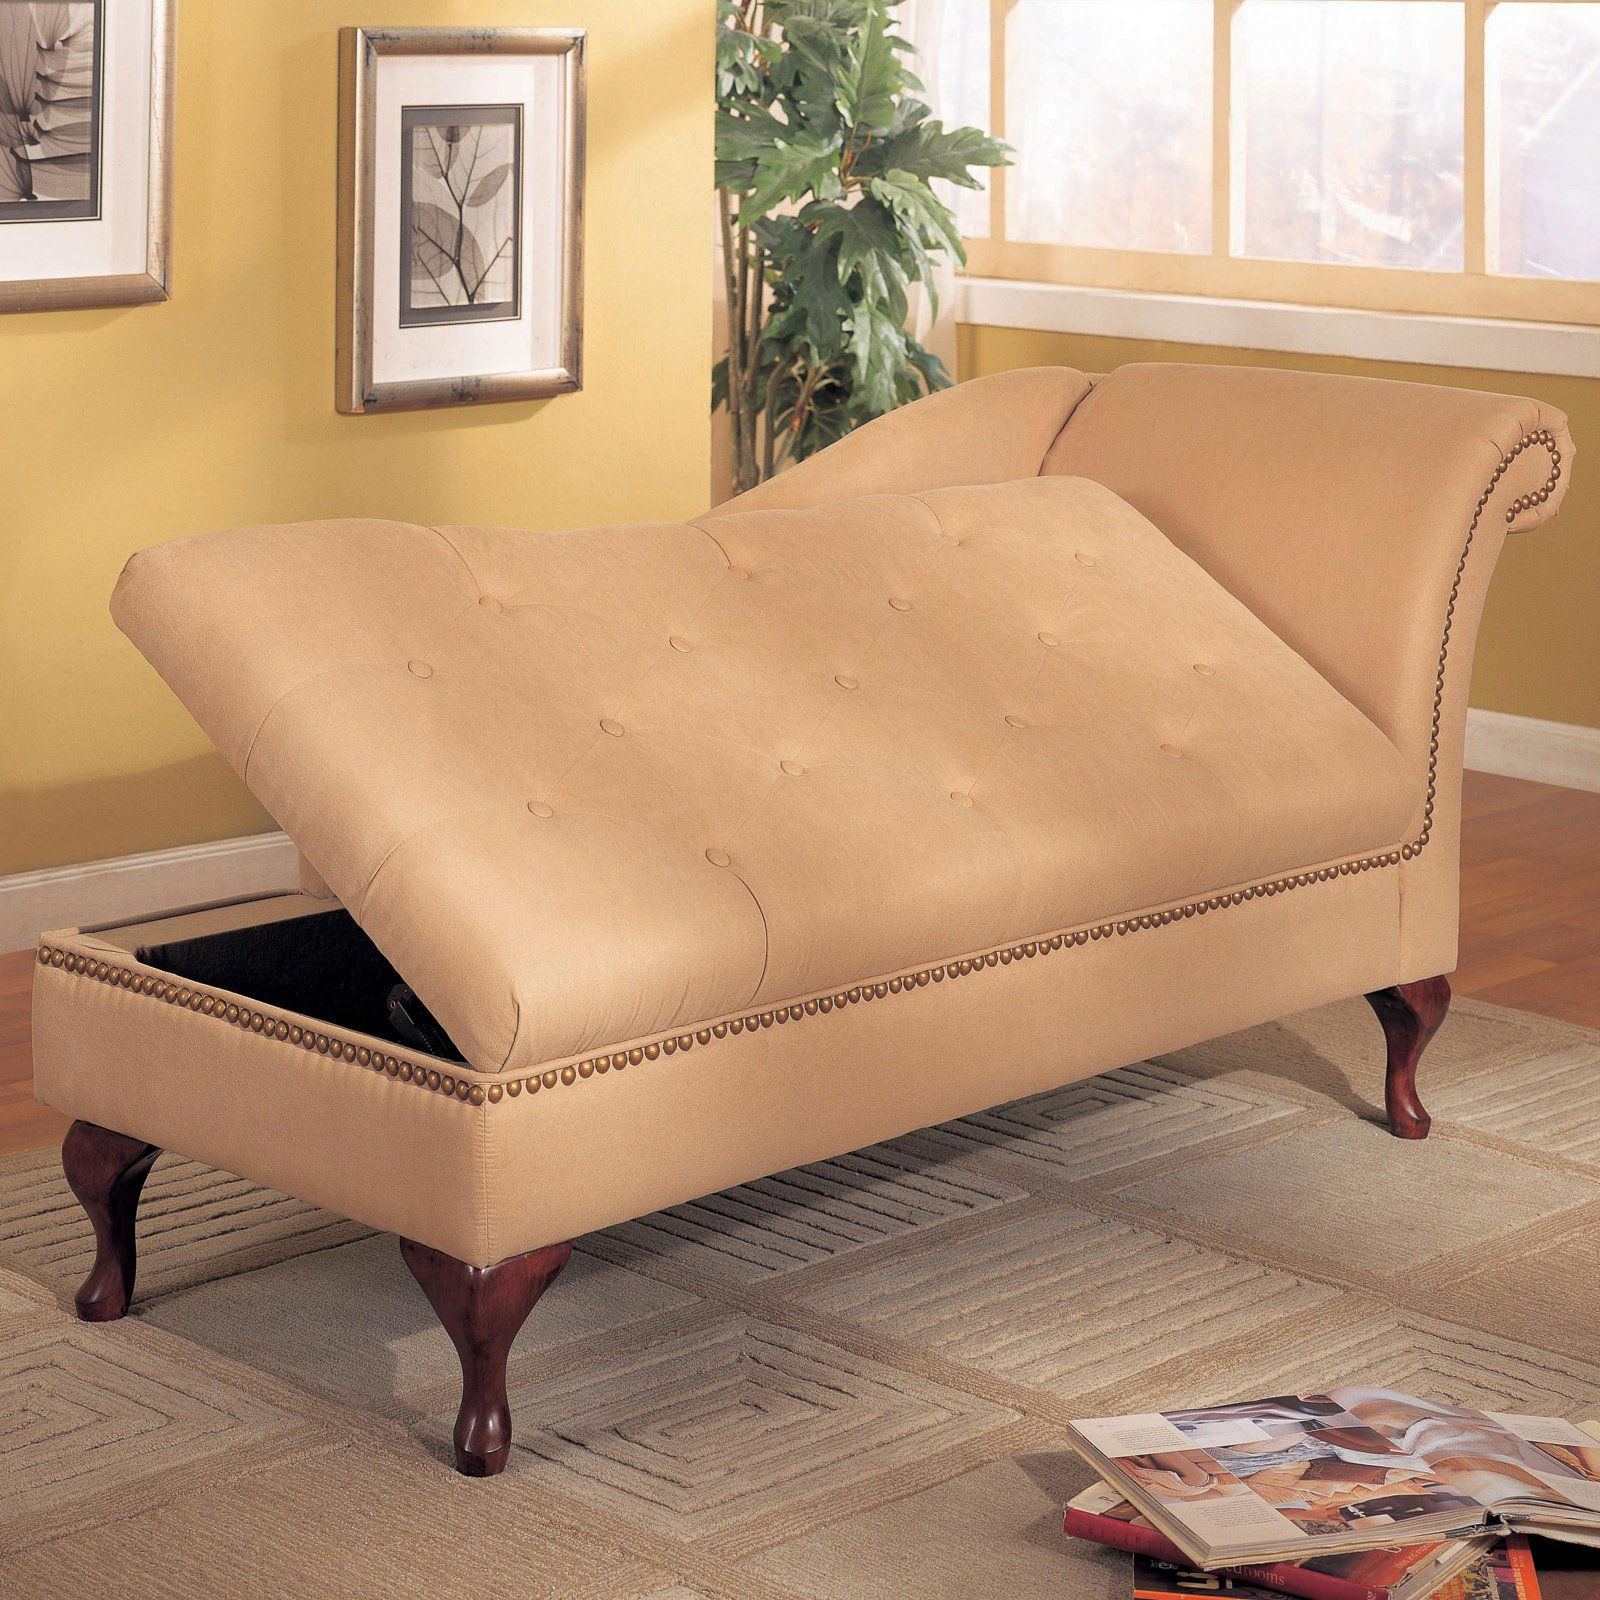 Indoor Chaise U203a Indoor Chaise Lounge With Storage Chaise Lounges Indoor Chaise  Lounges Wallpaper U203a Astonishing